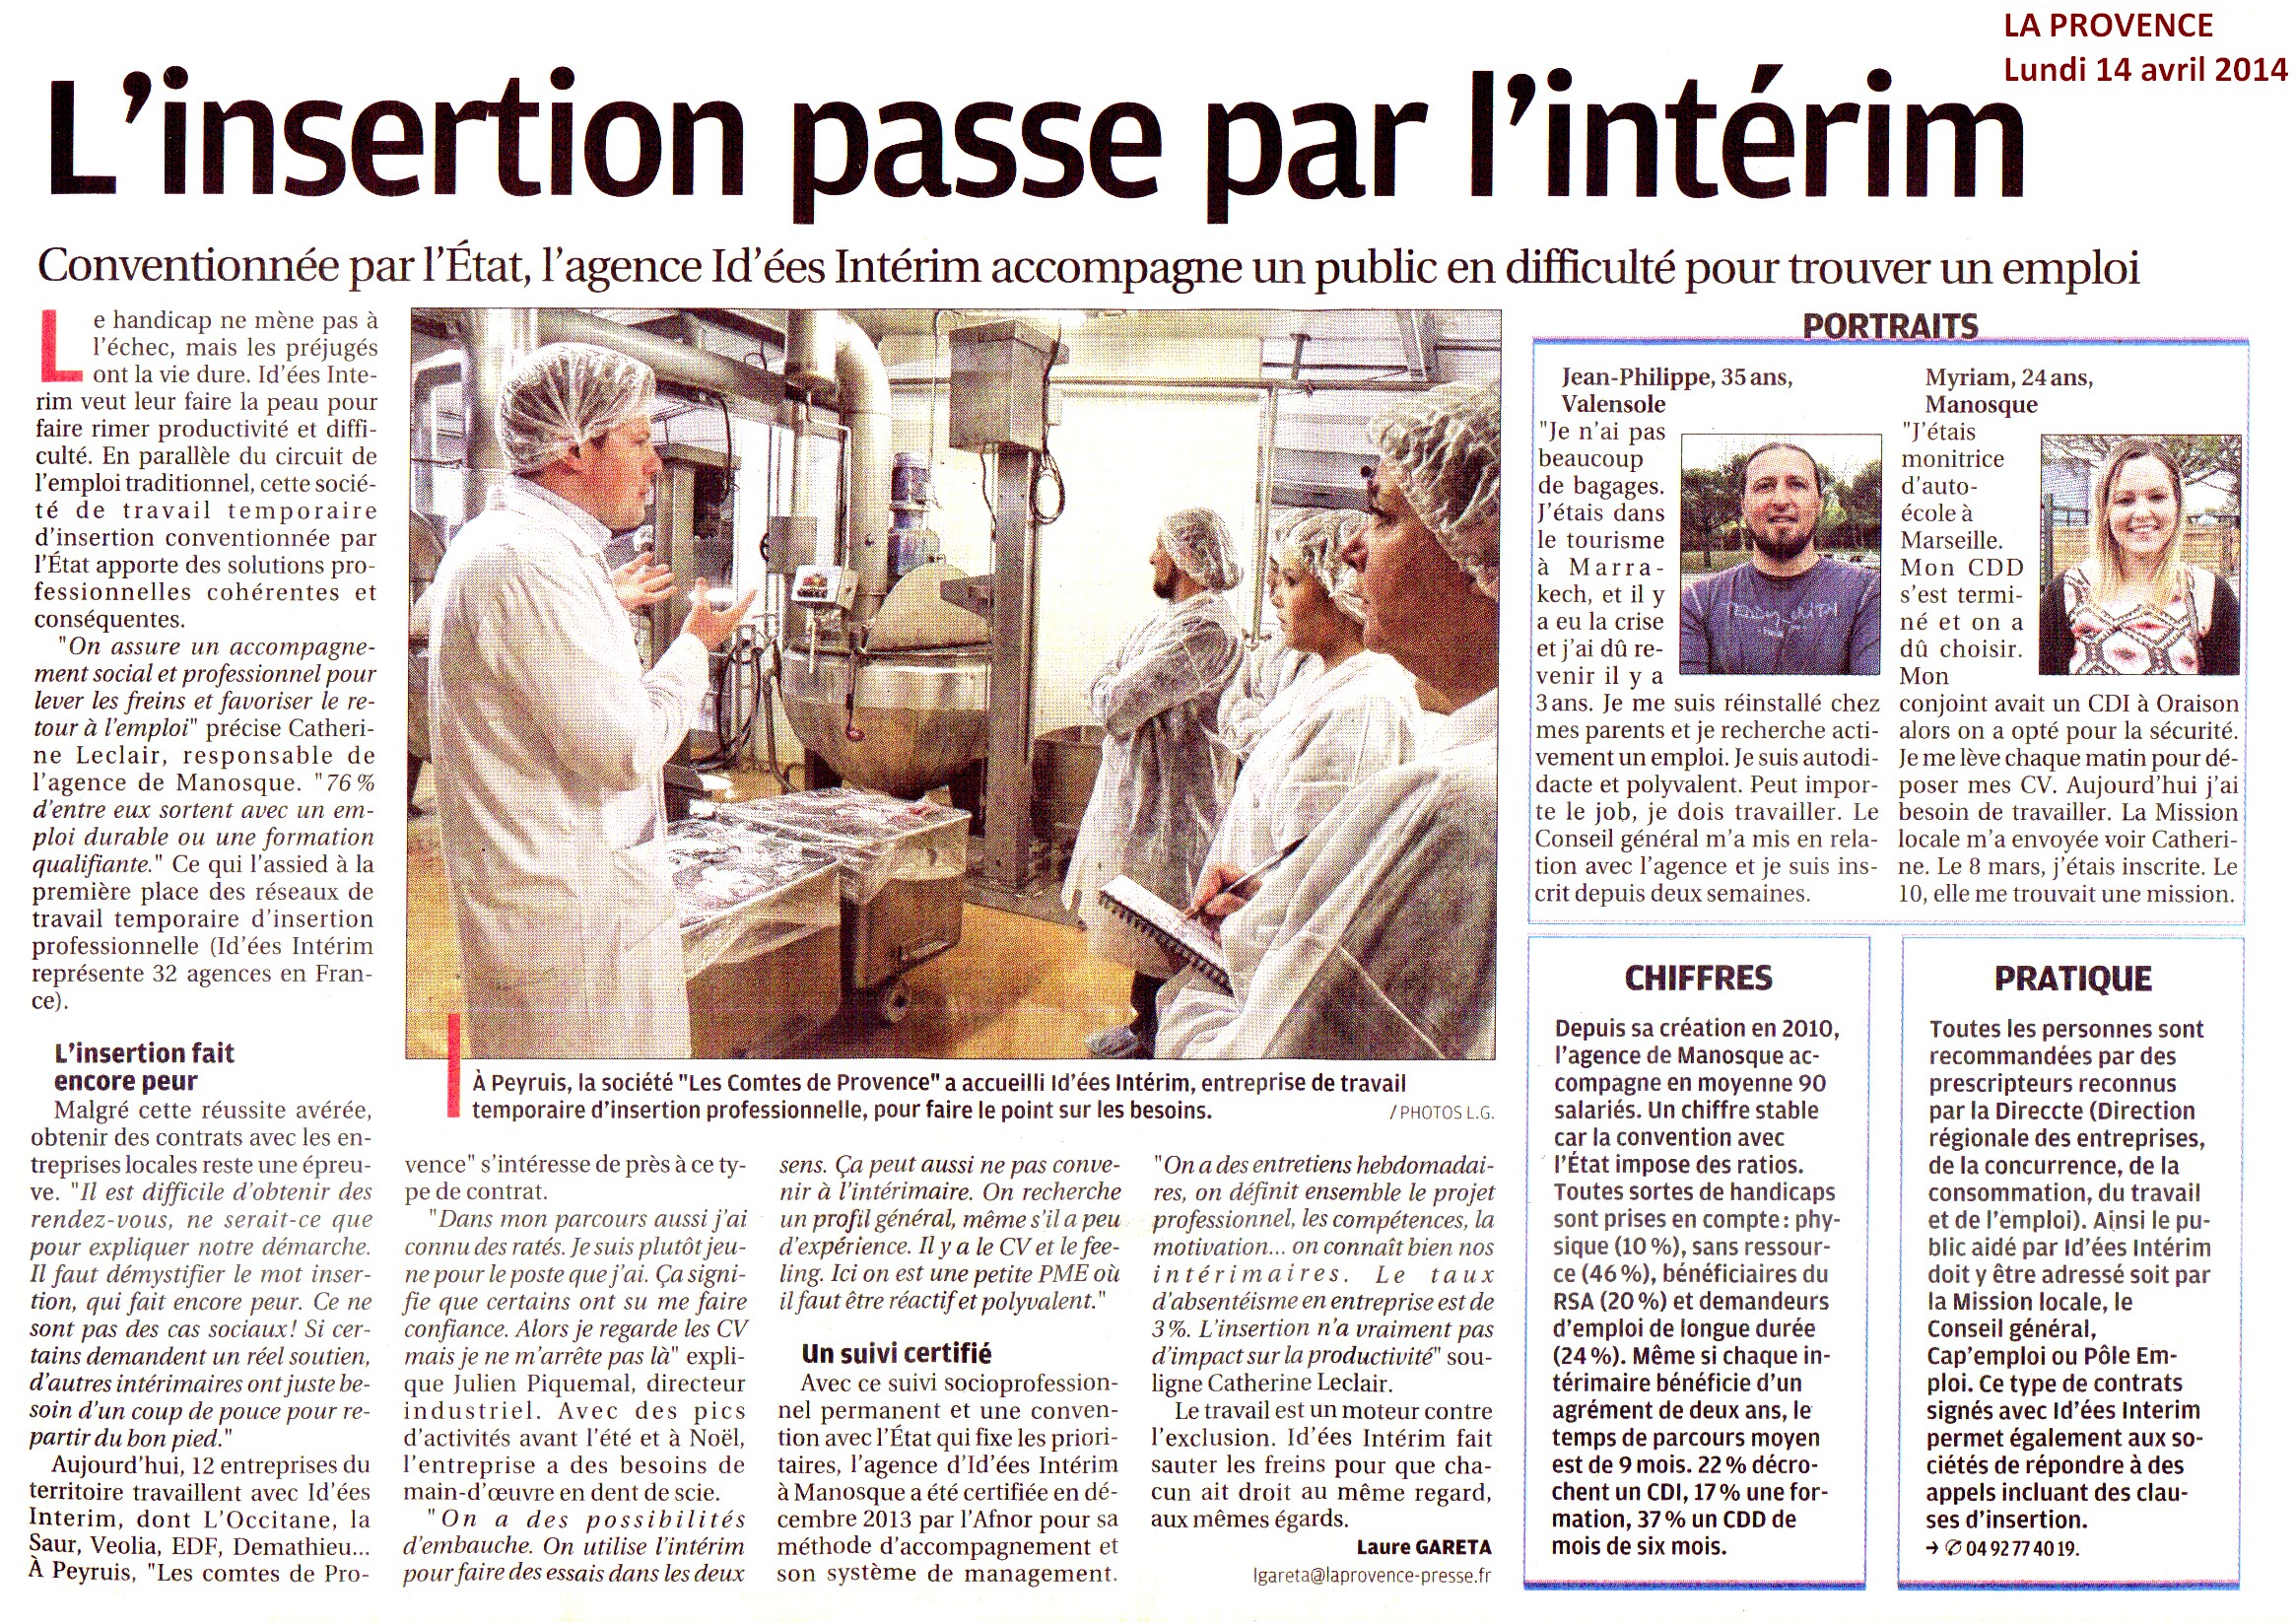 Article paru dans le journal La Provence du 14 avril 2014.